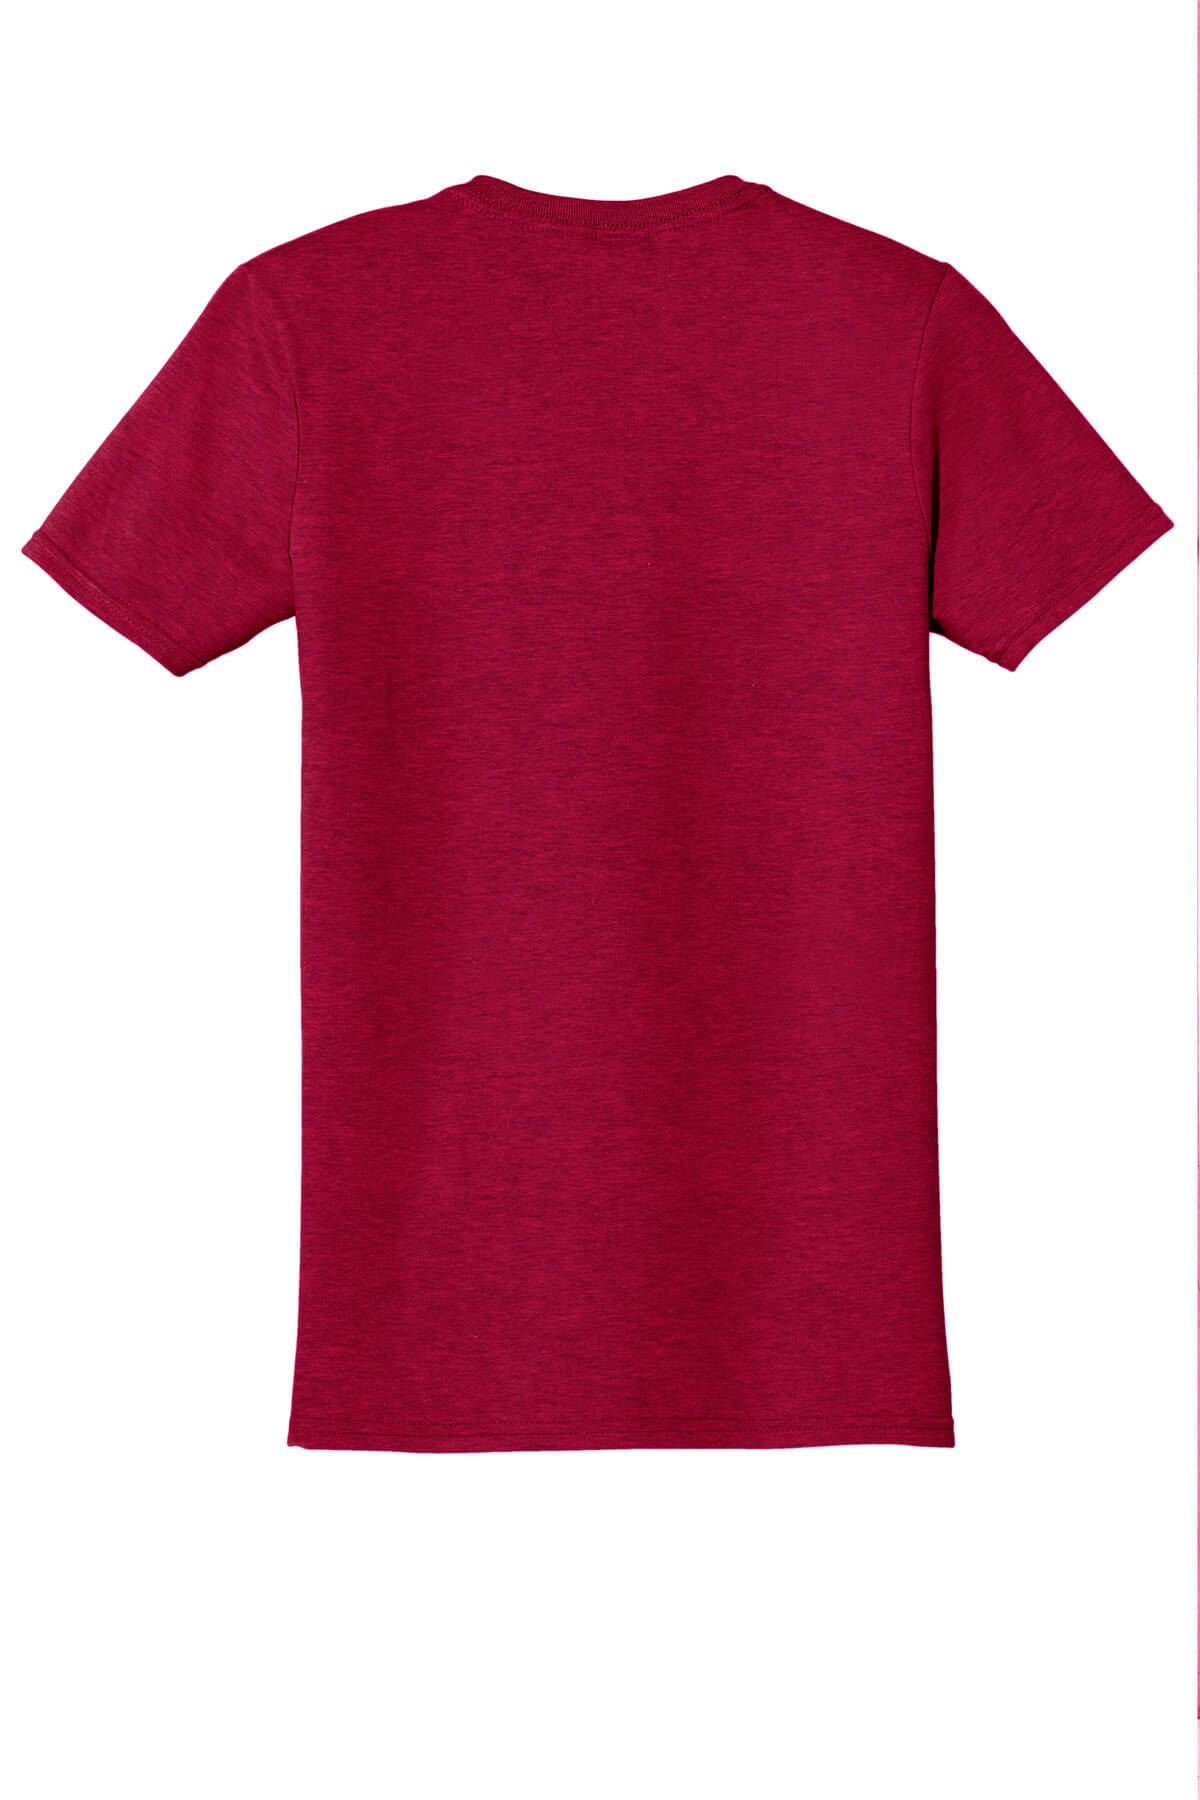 Cherry Red T-Shirt Back